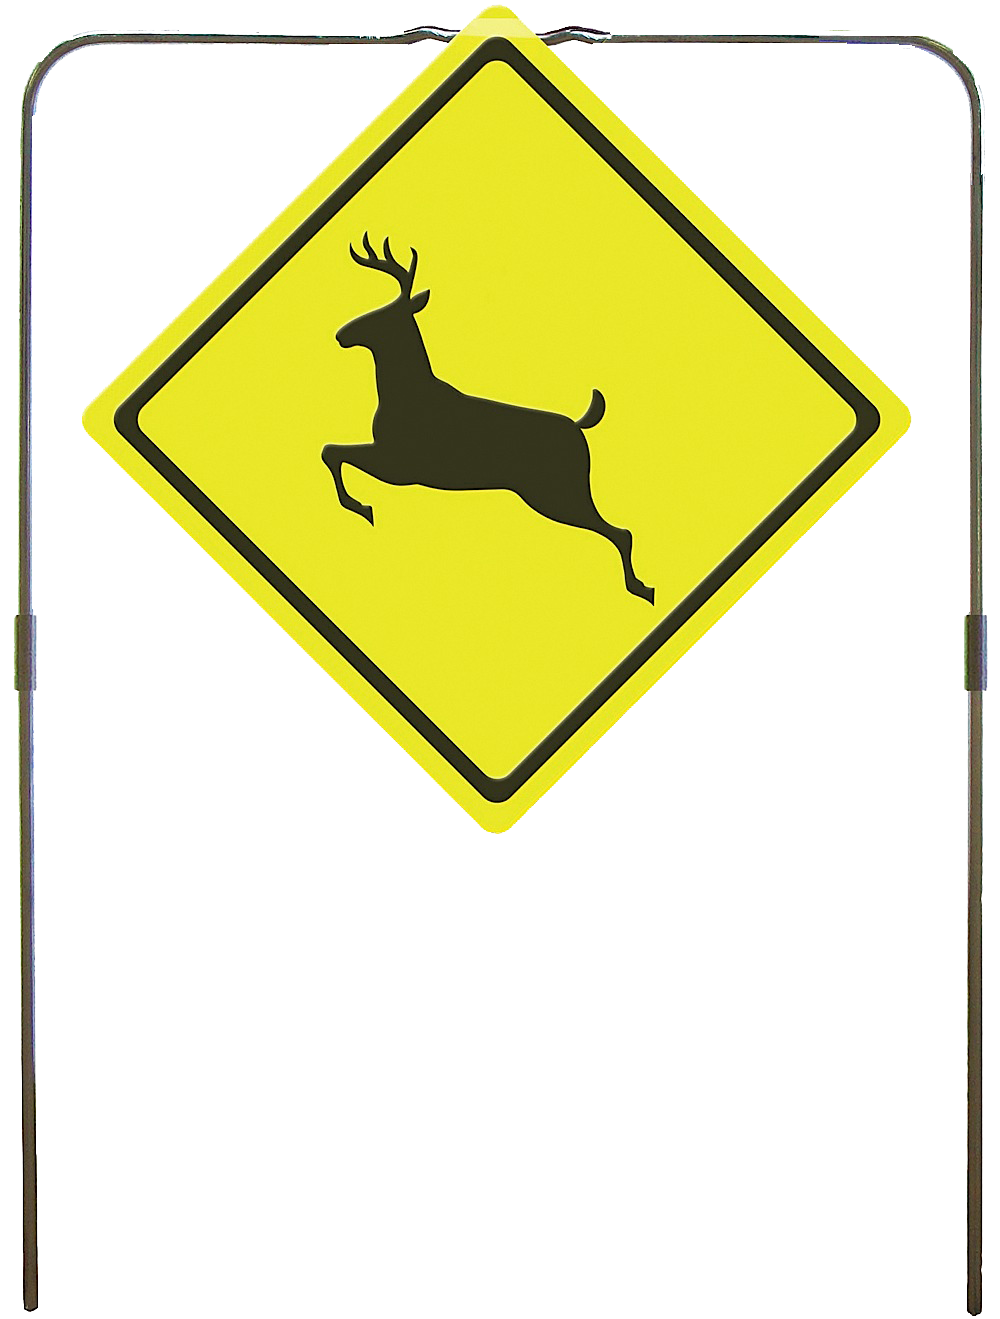 Do All Traps ISD01 Impact Seal Deer Crossing 18